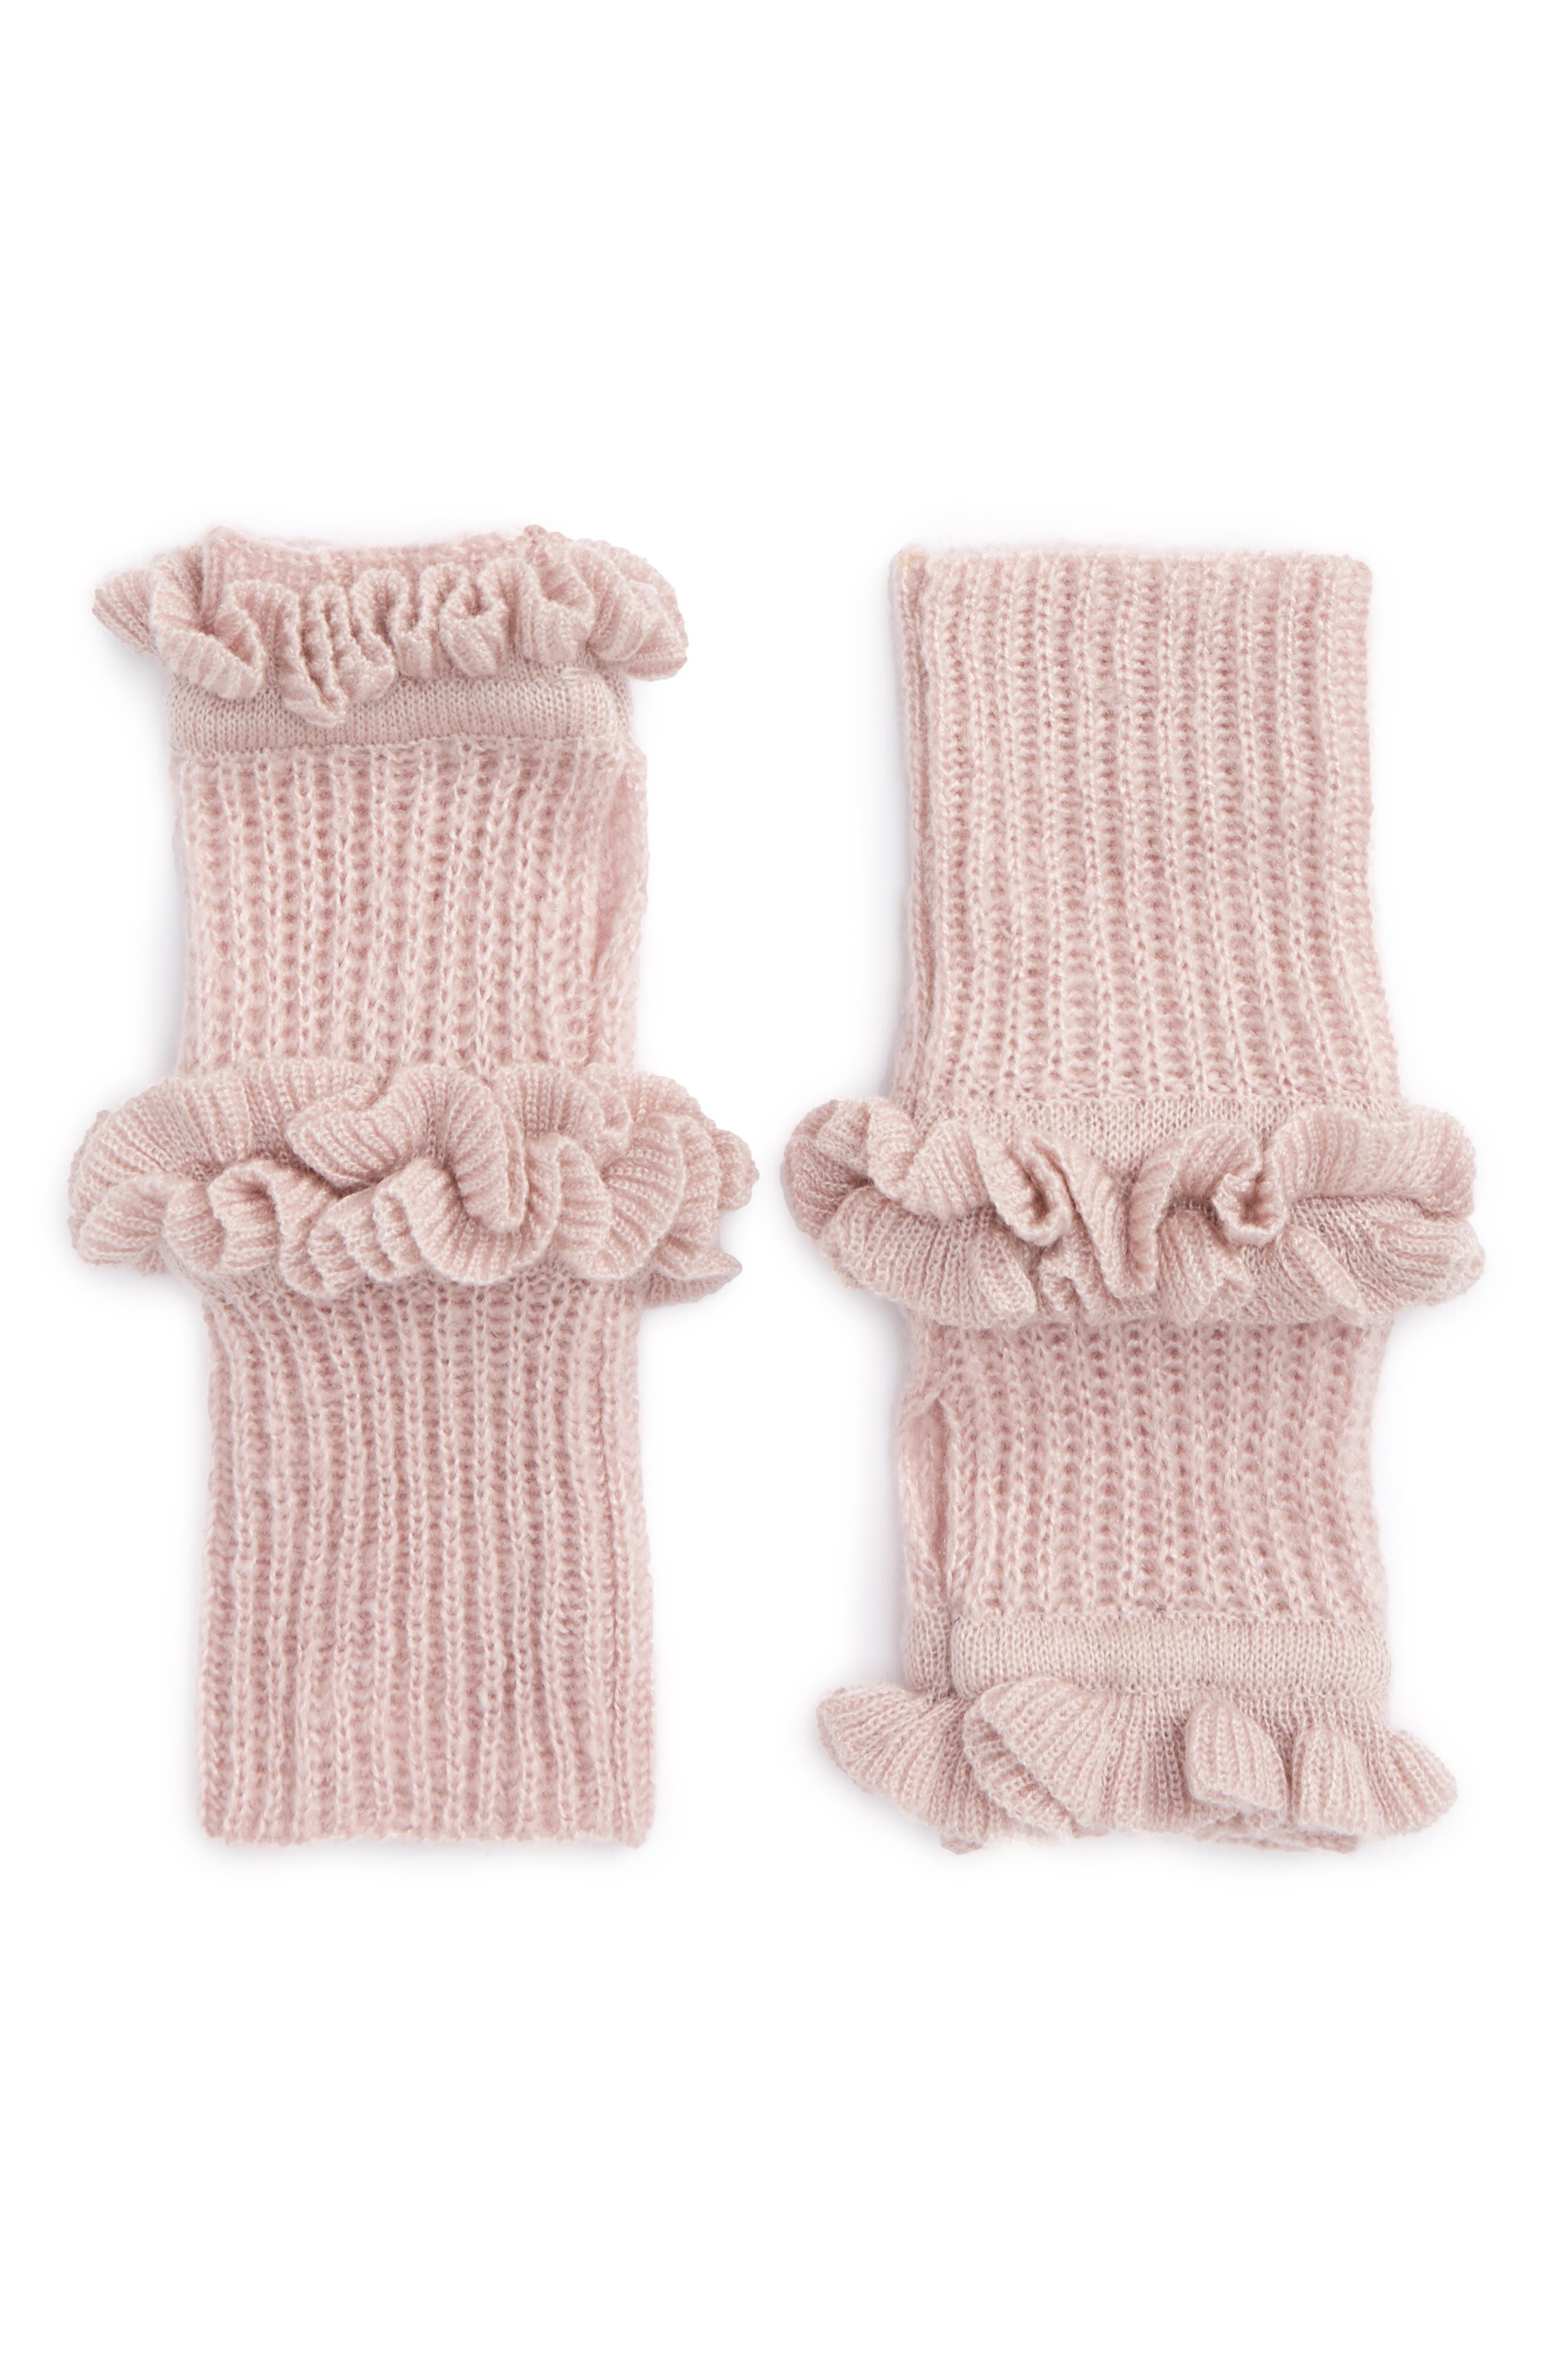 Ruffle Fingerless Gloves,                             Main thumbnail 1, color,                             Pale Pink